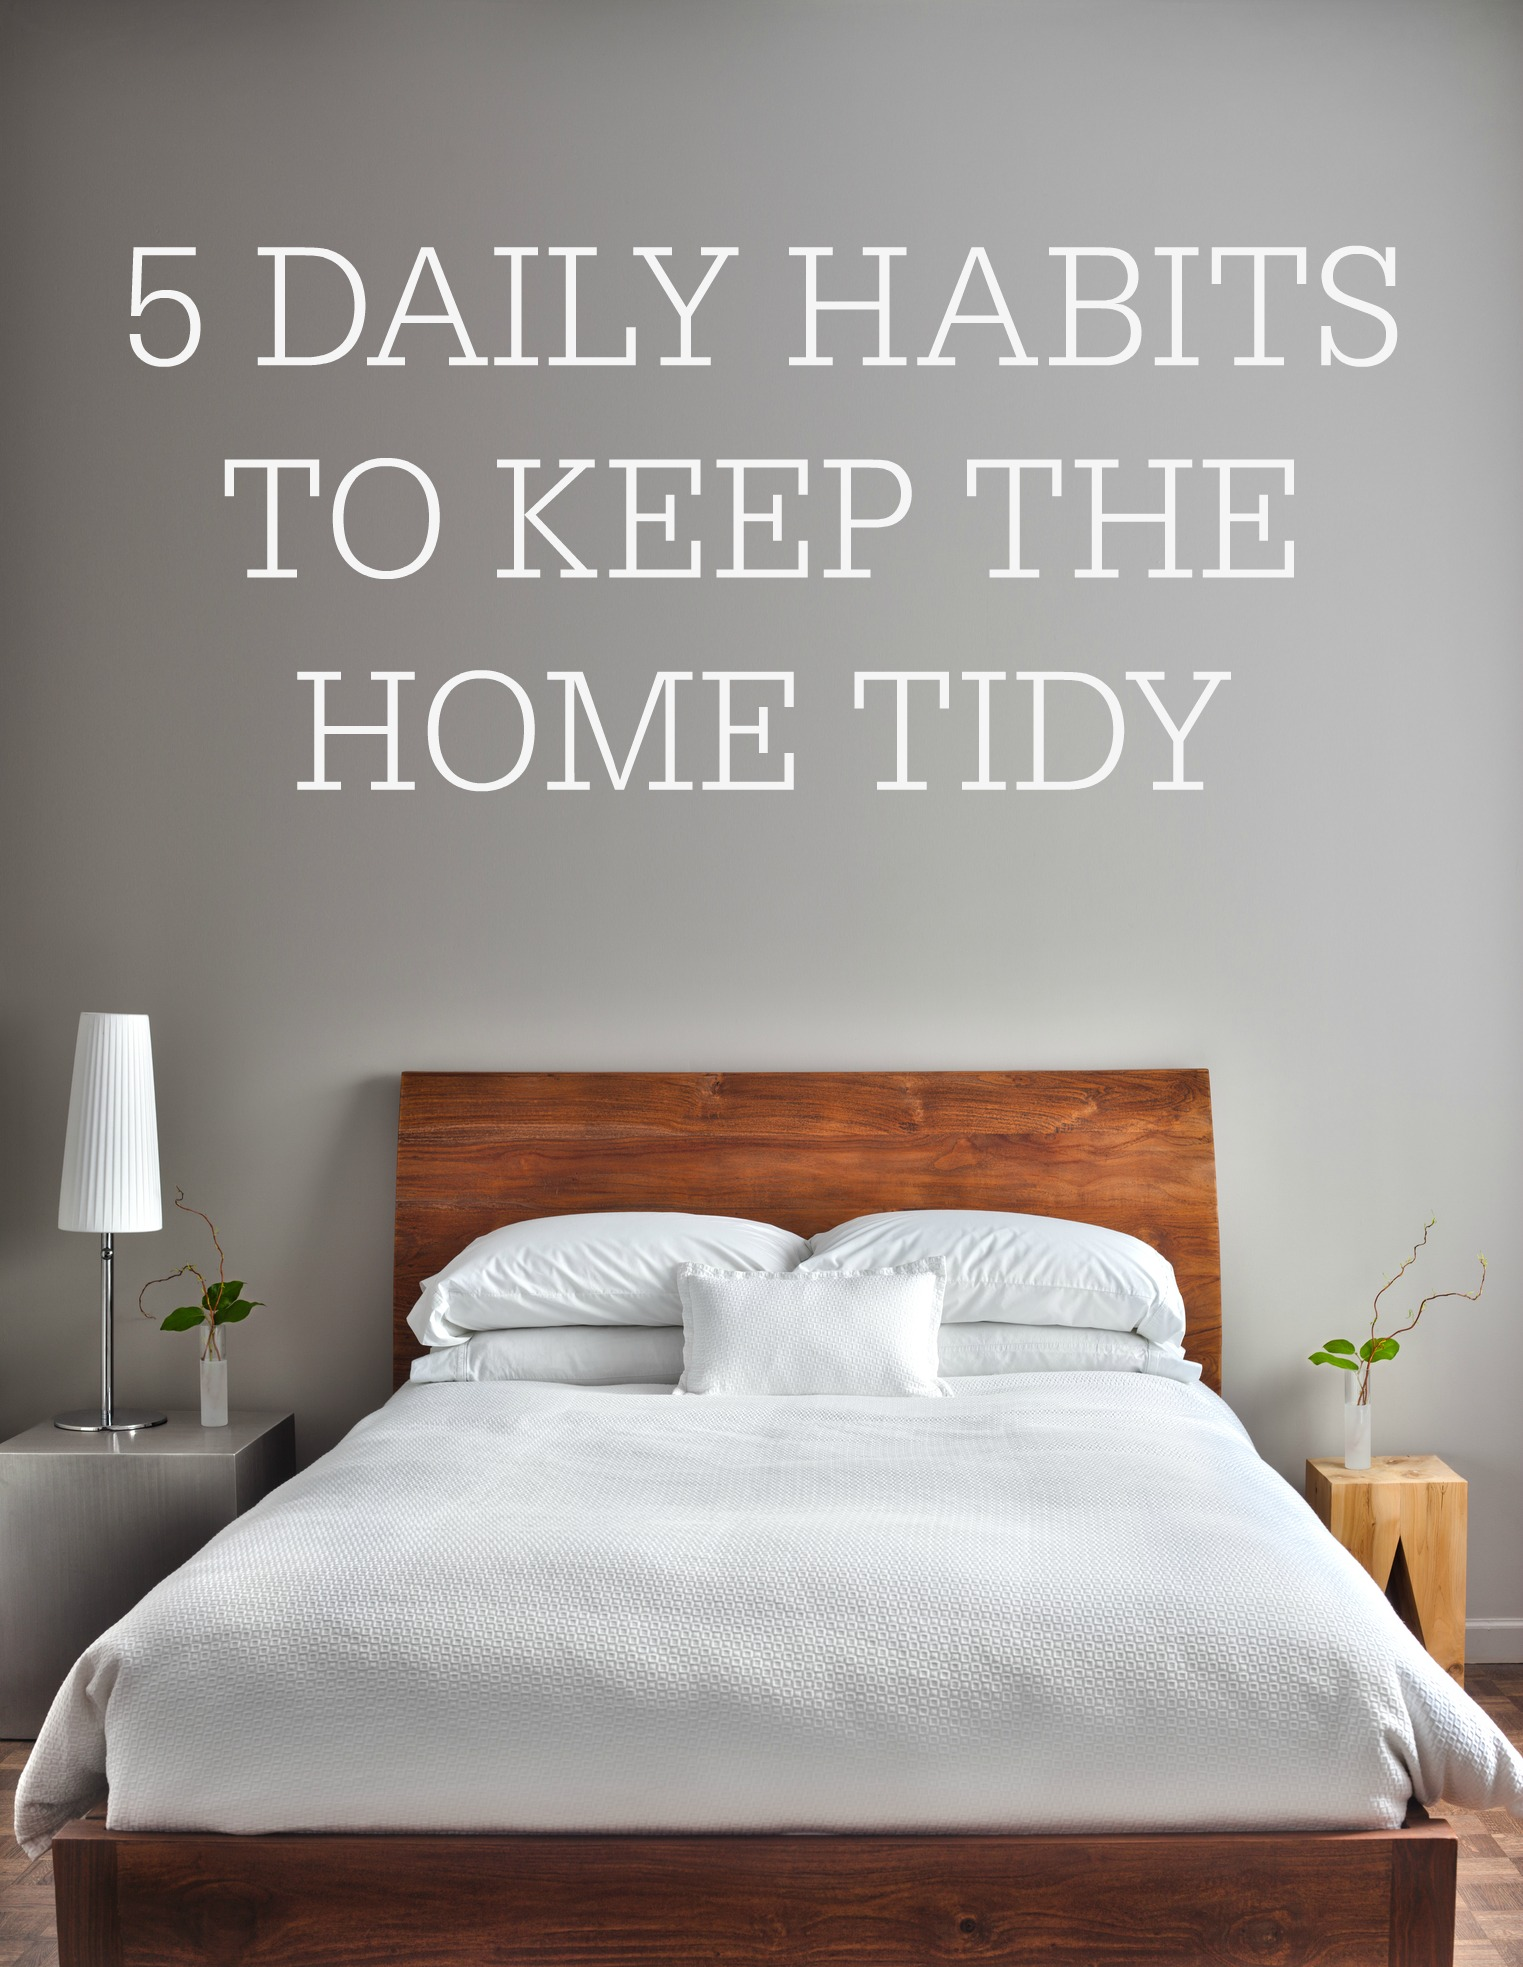 View Larger Image 5 daily habits to